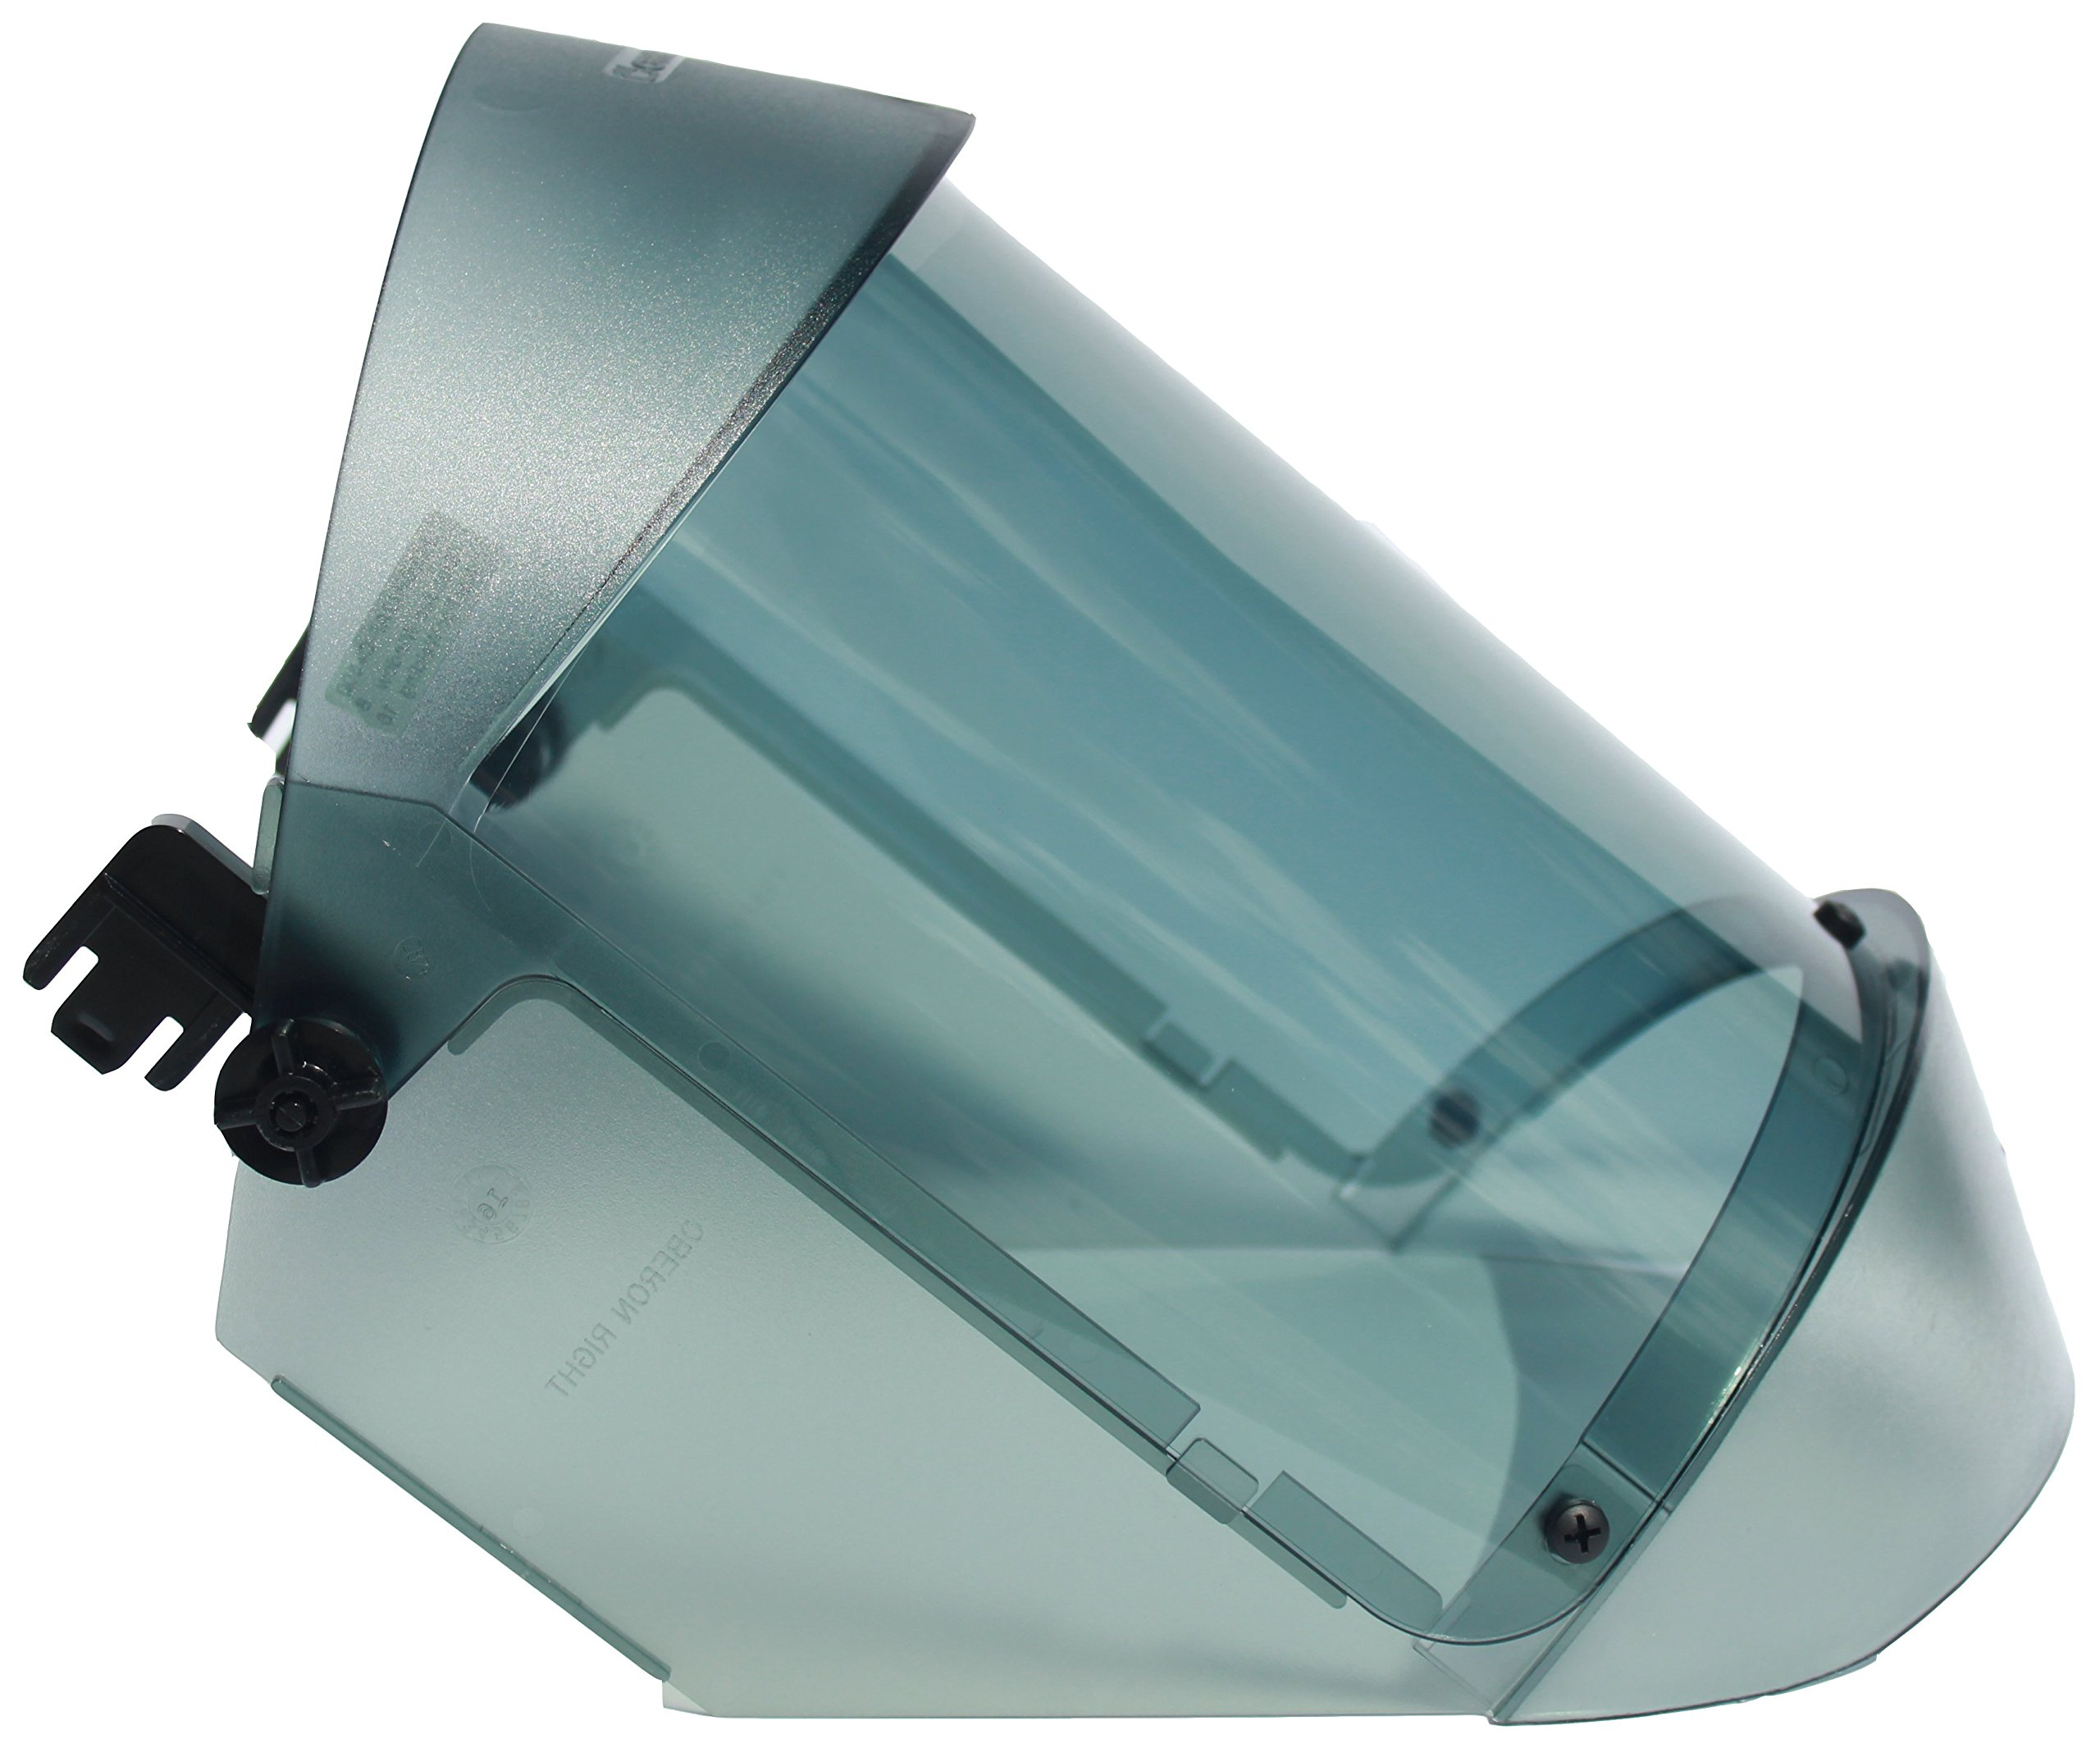 TCG12 Series Arc Flash Face Shield w/Adapter by Oberon Company